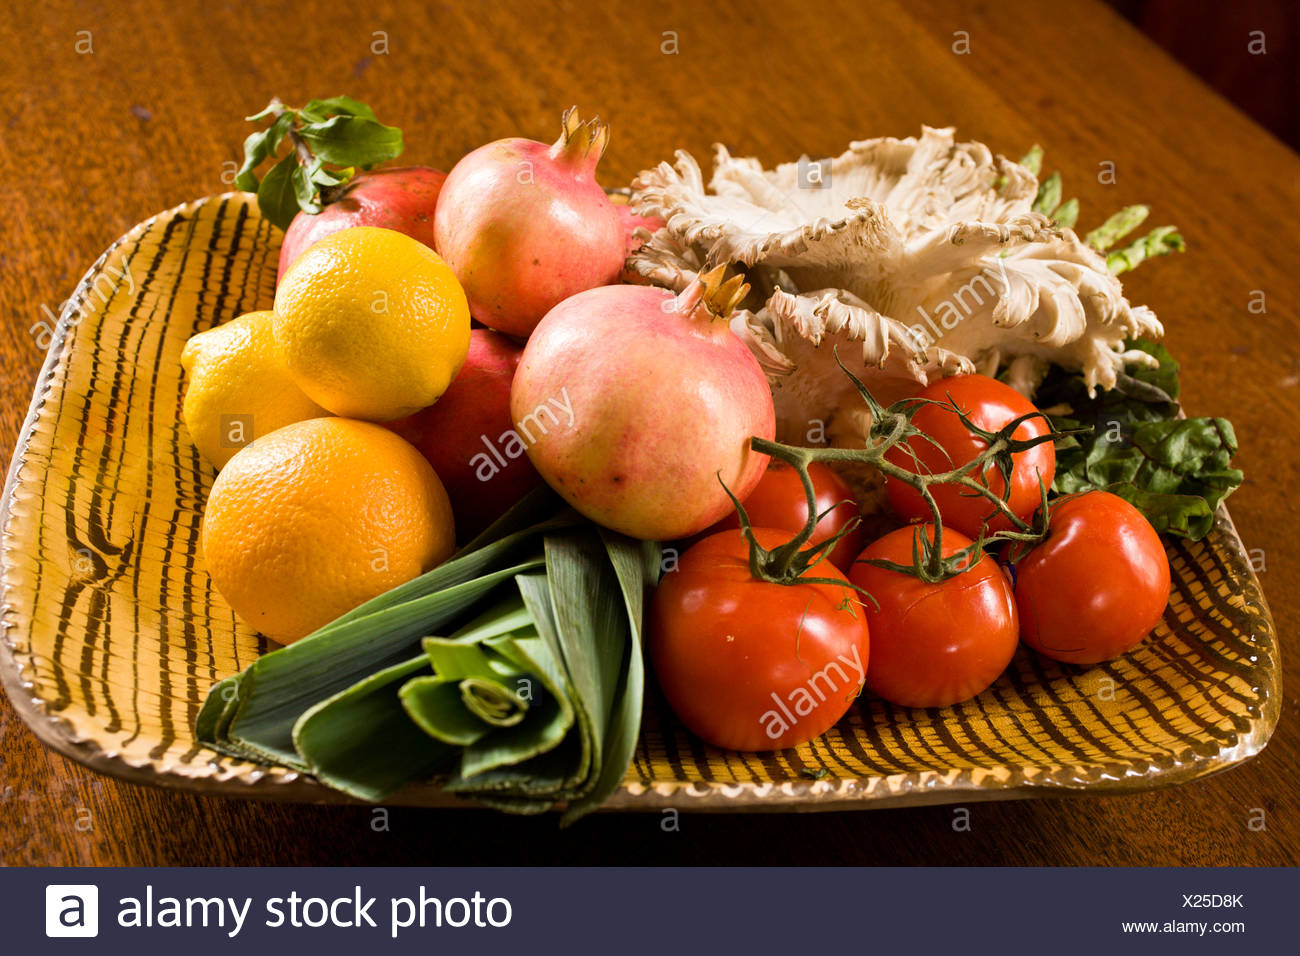 A collections of fruits and vegetables used in colonial recipes. - Stock Image